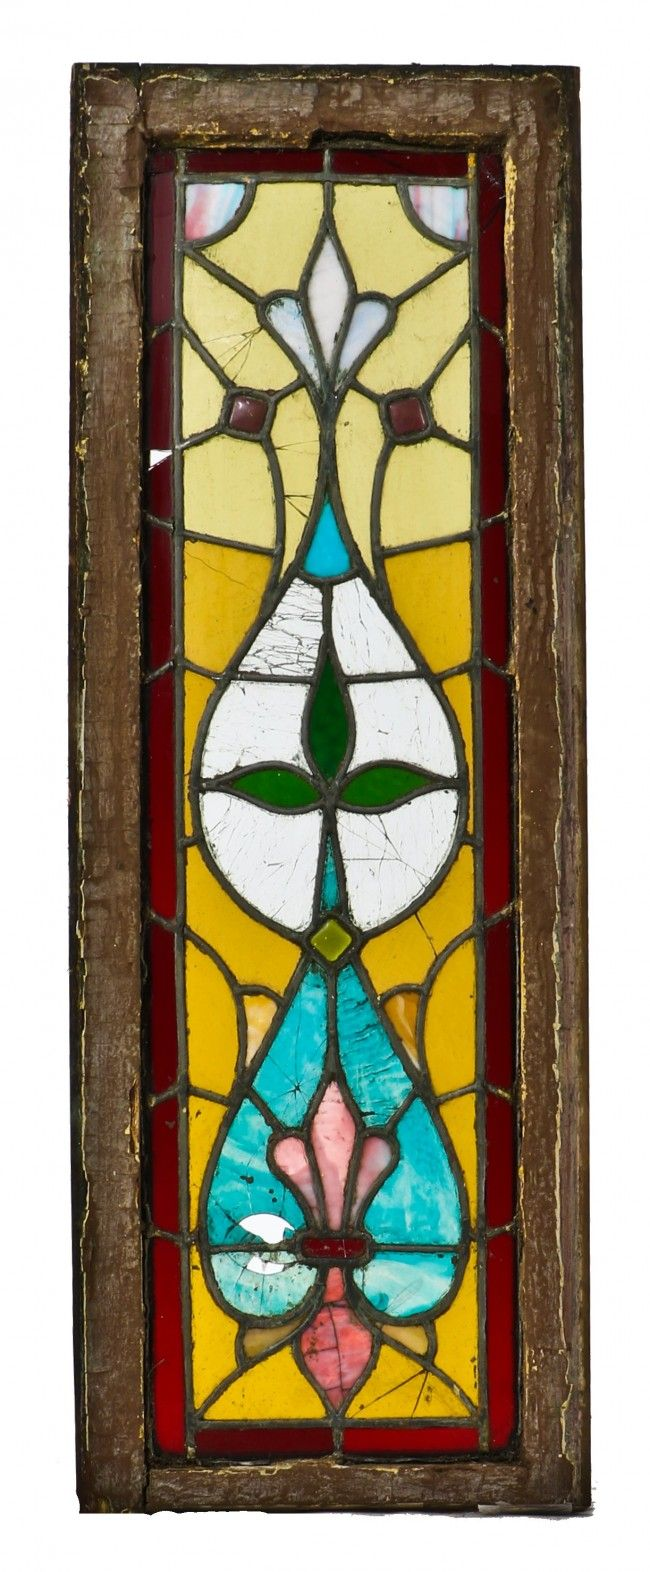 Antique stained glass doors - Find This Pin And More On Antique Stained Glass